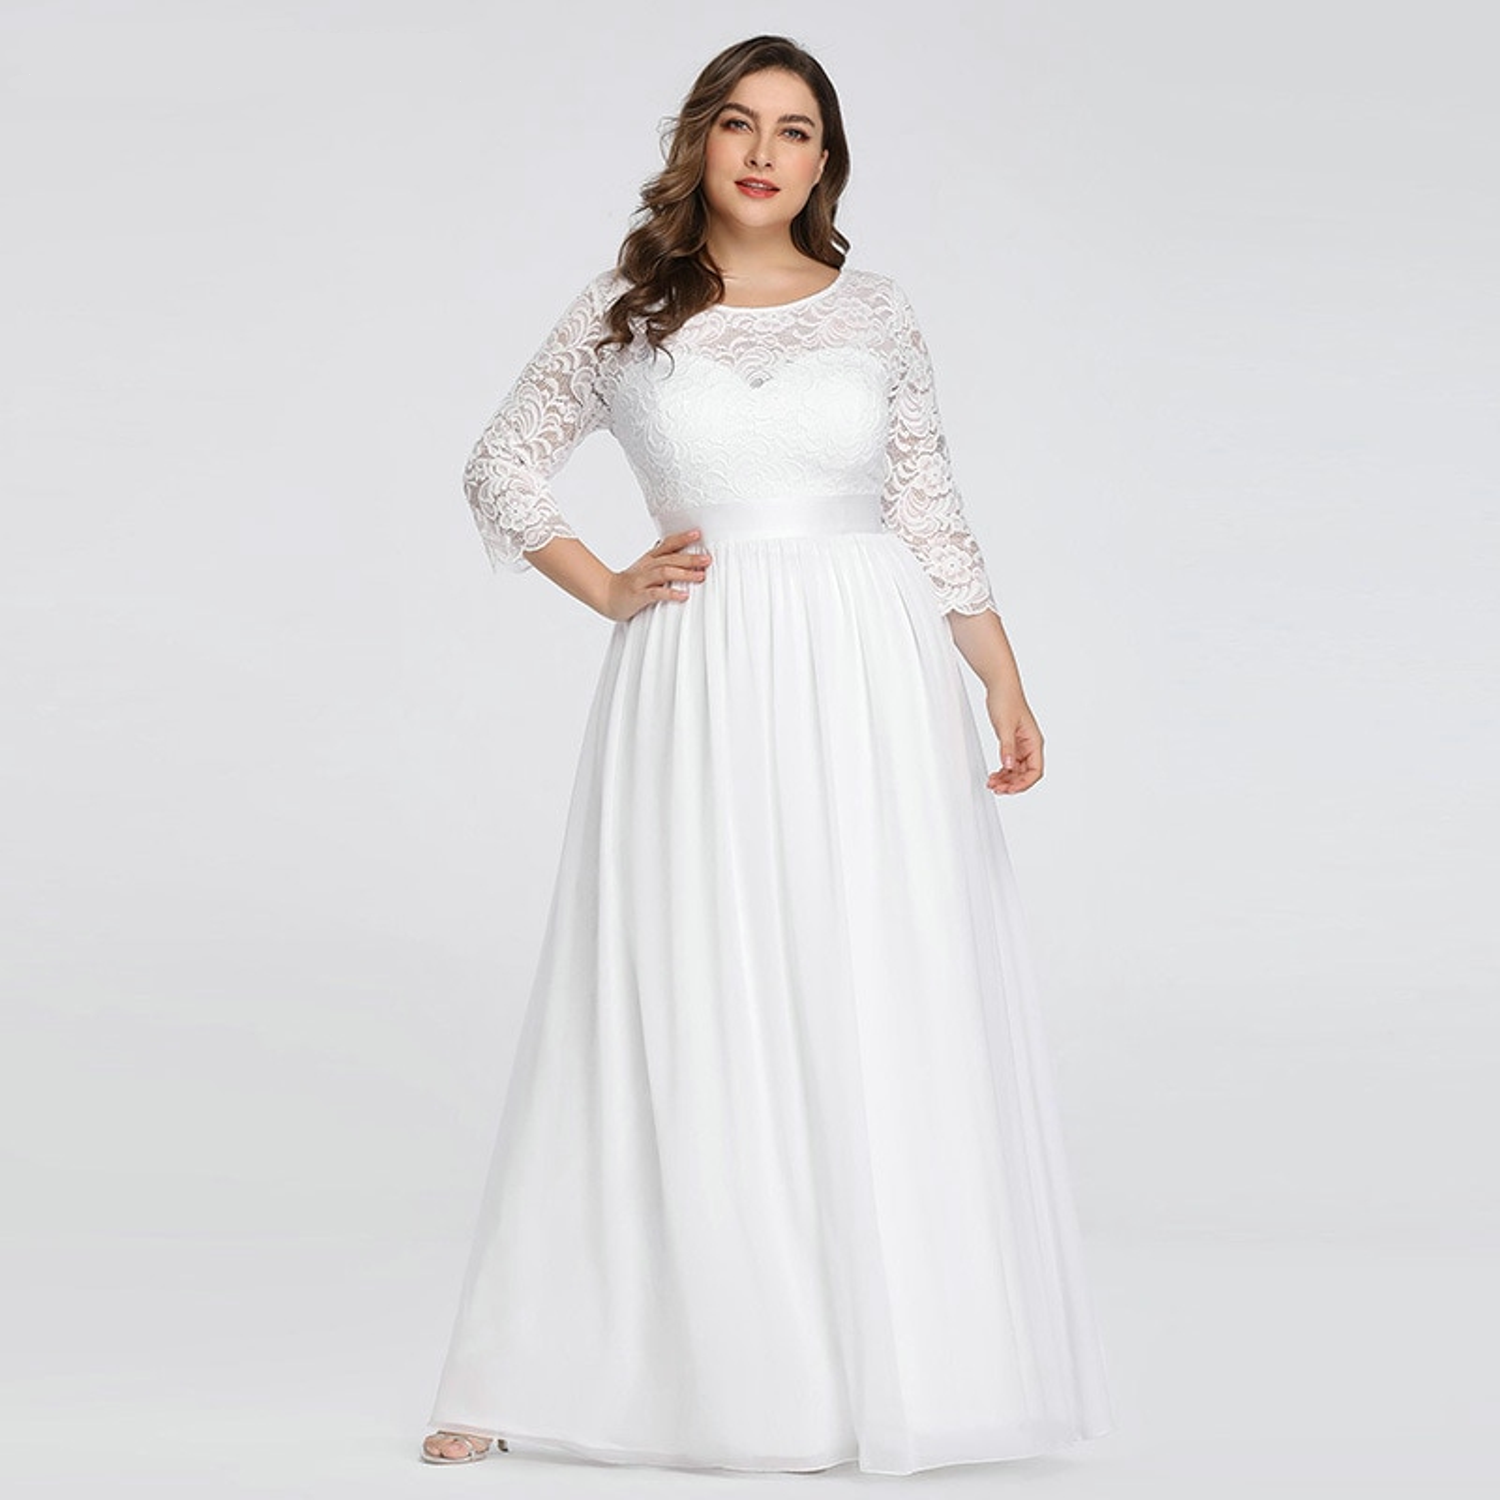 Empire waist wedding gown with sleeves